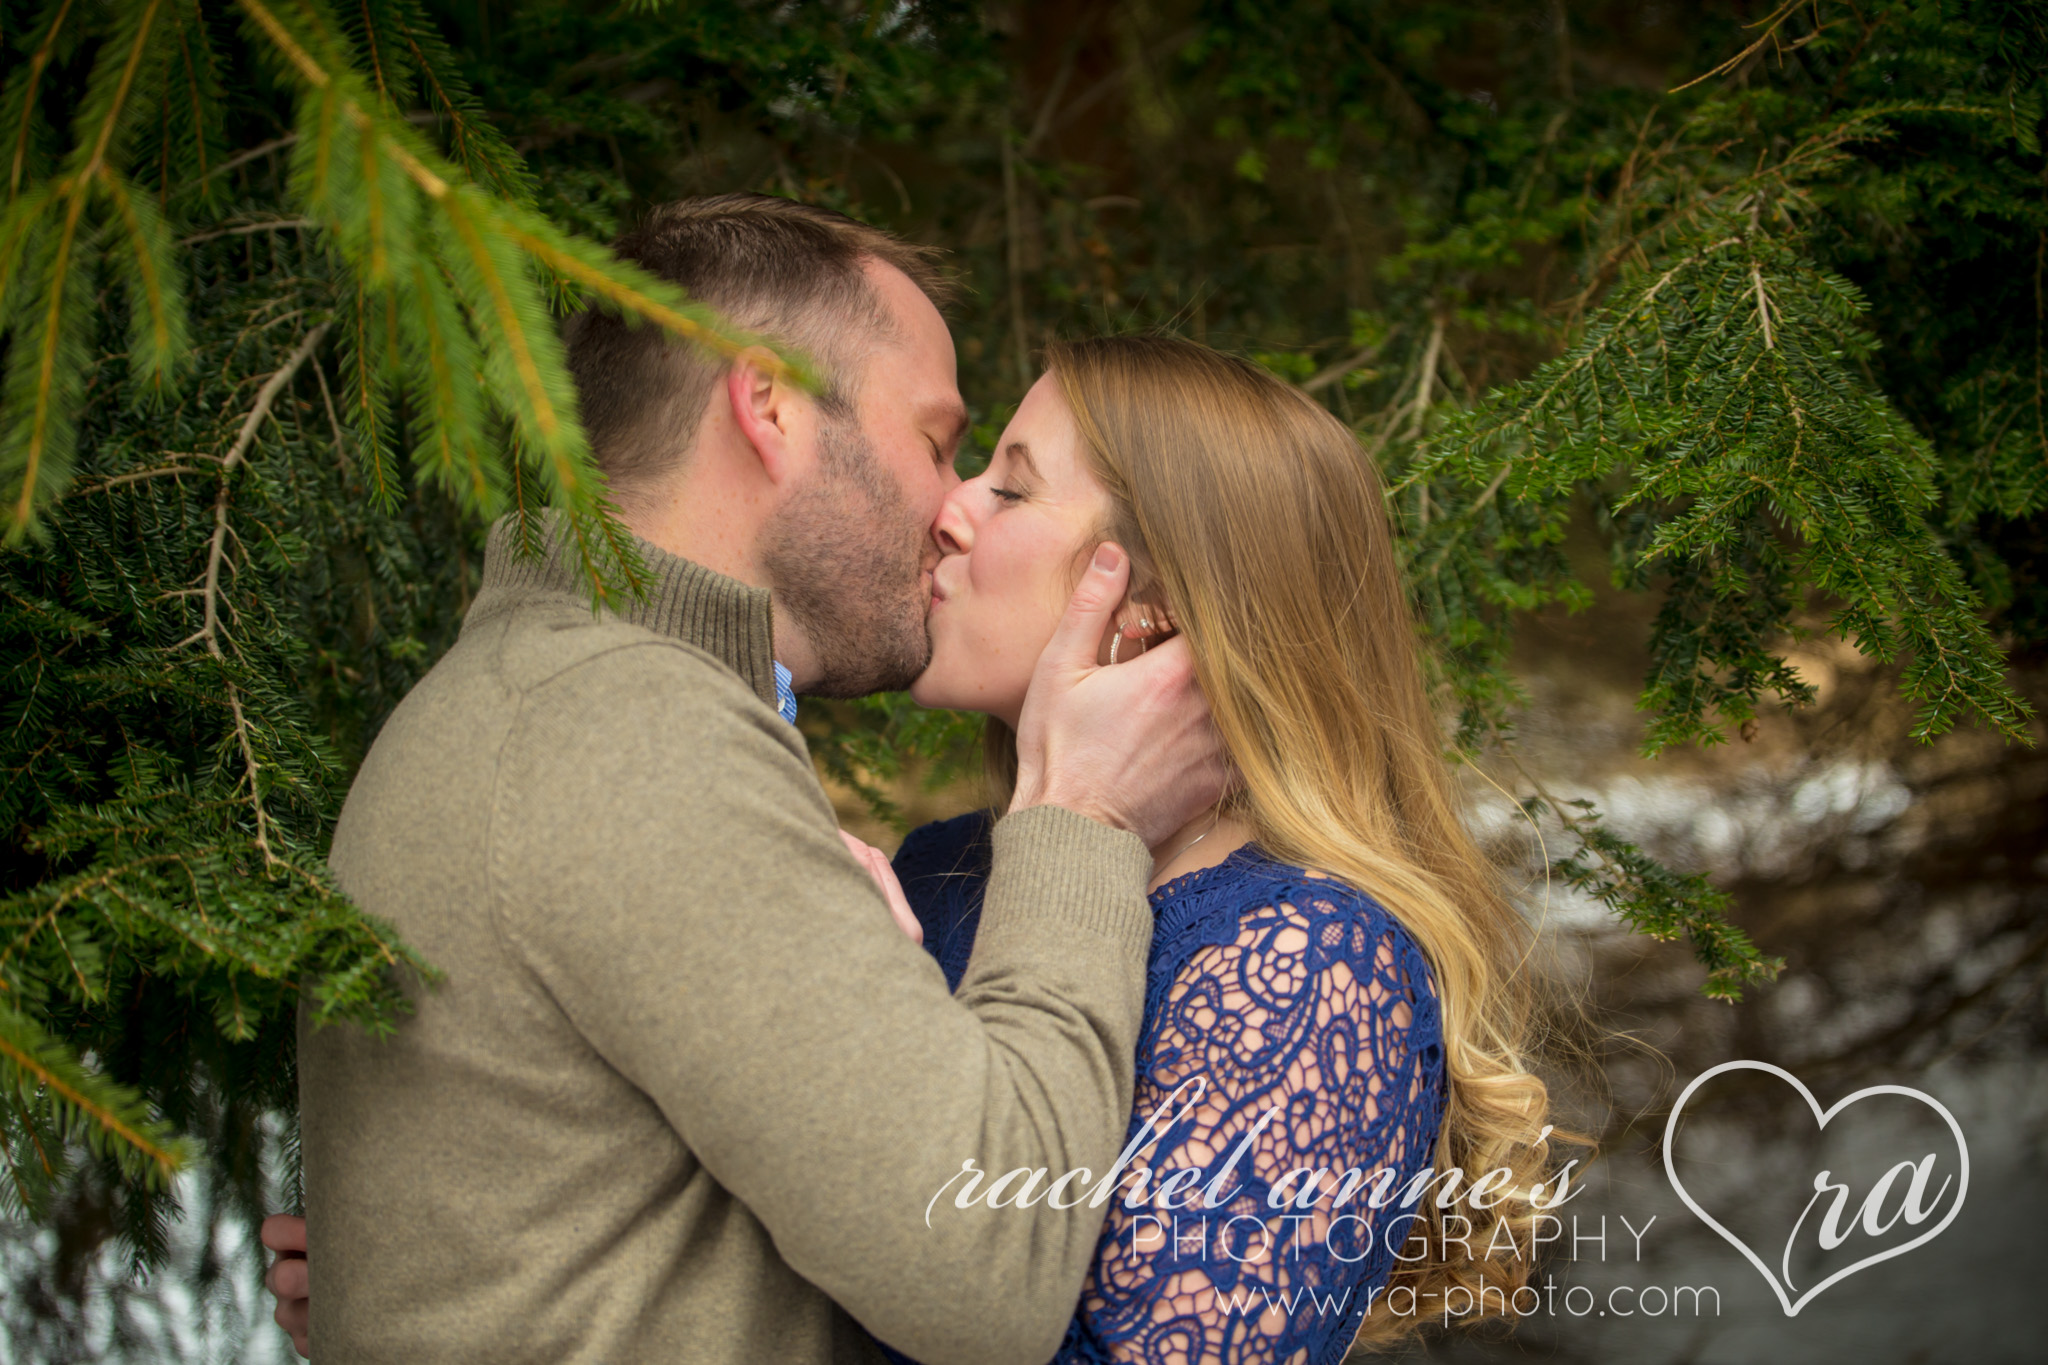 077-JKM-DUBOIS-PA-ENGAGEMENT-PHOTOGRAPHY.jpg